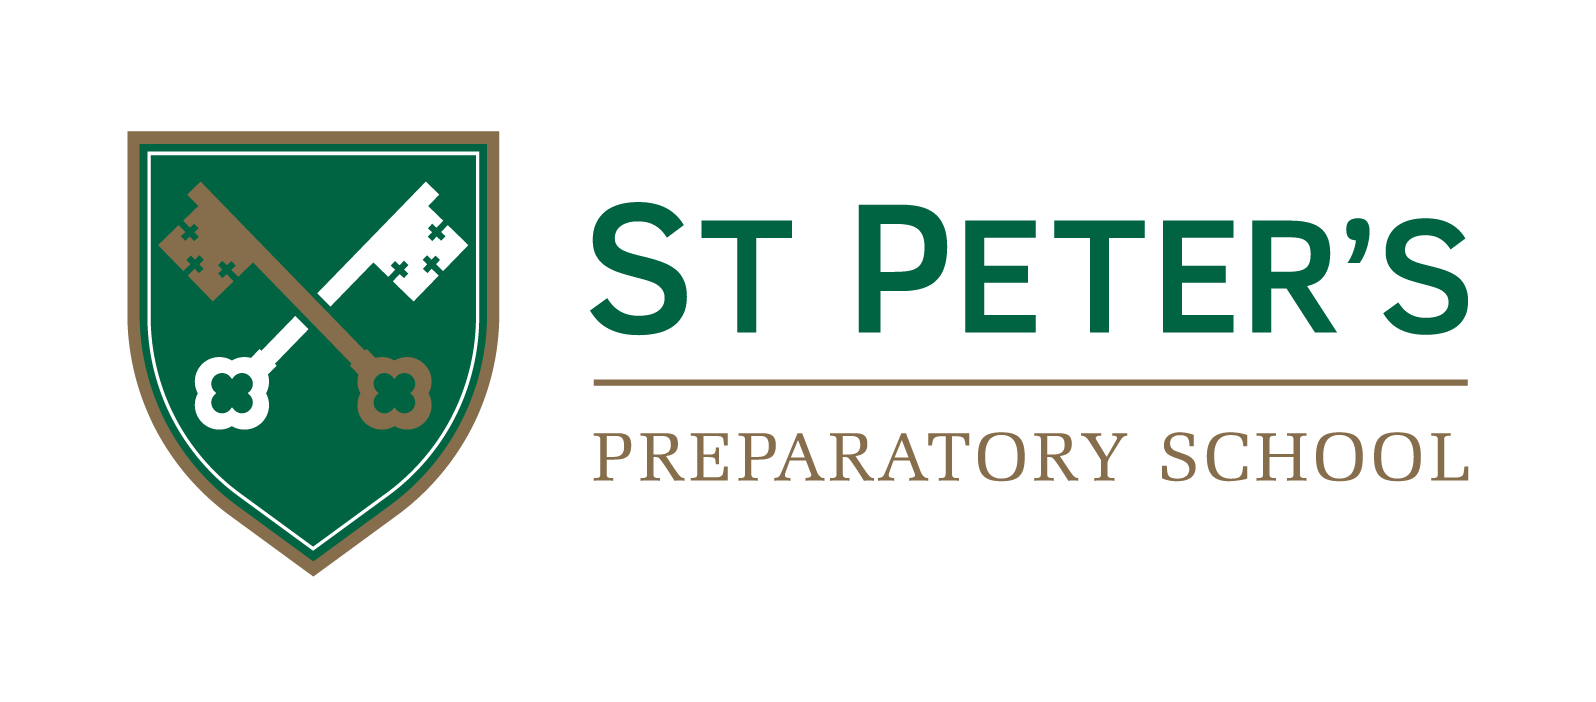 St Peter's Preparatory School